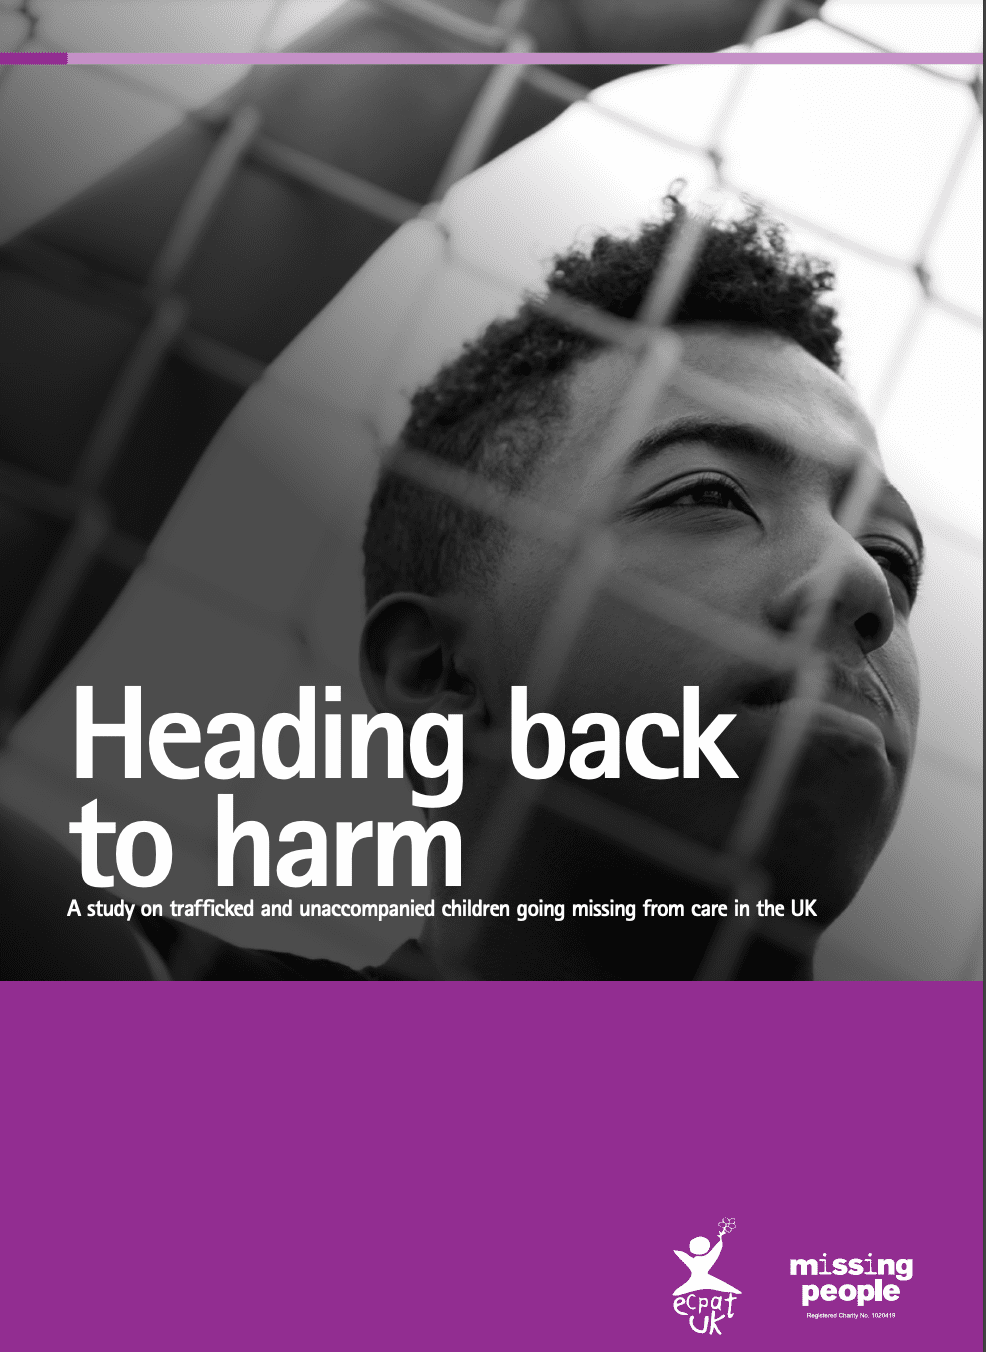 Heading back to harm: A study on trafficked and unaccompanied children going missing from care in the UK